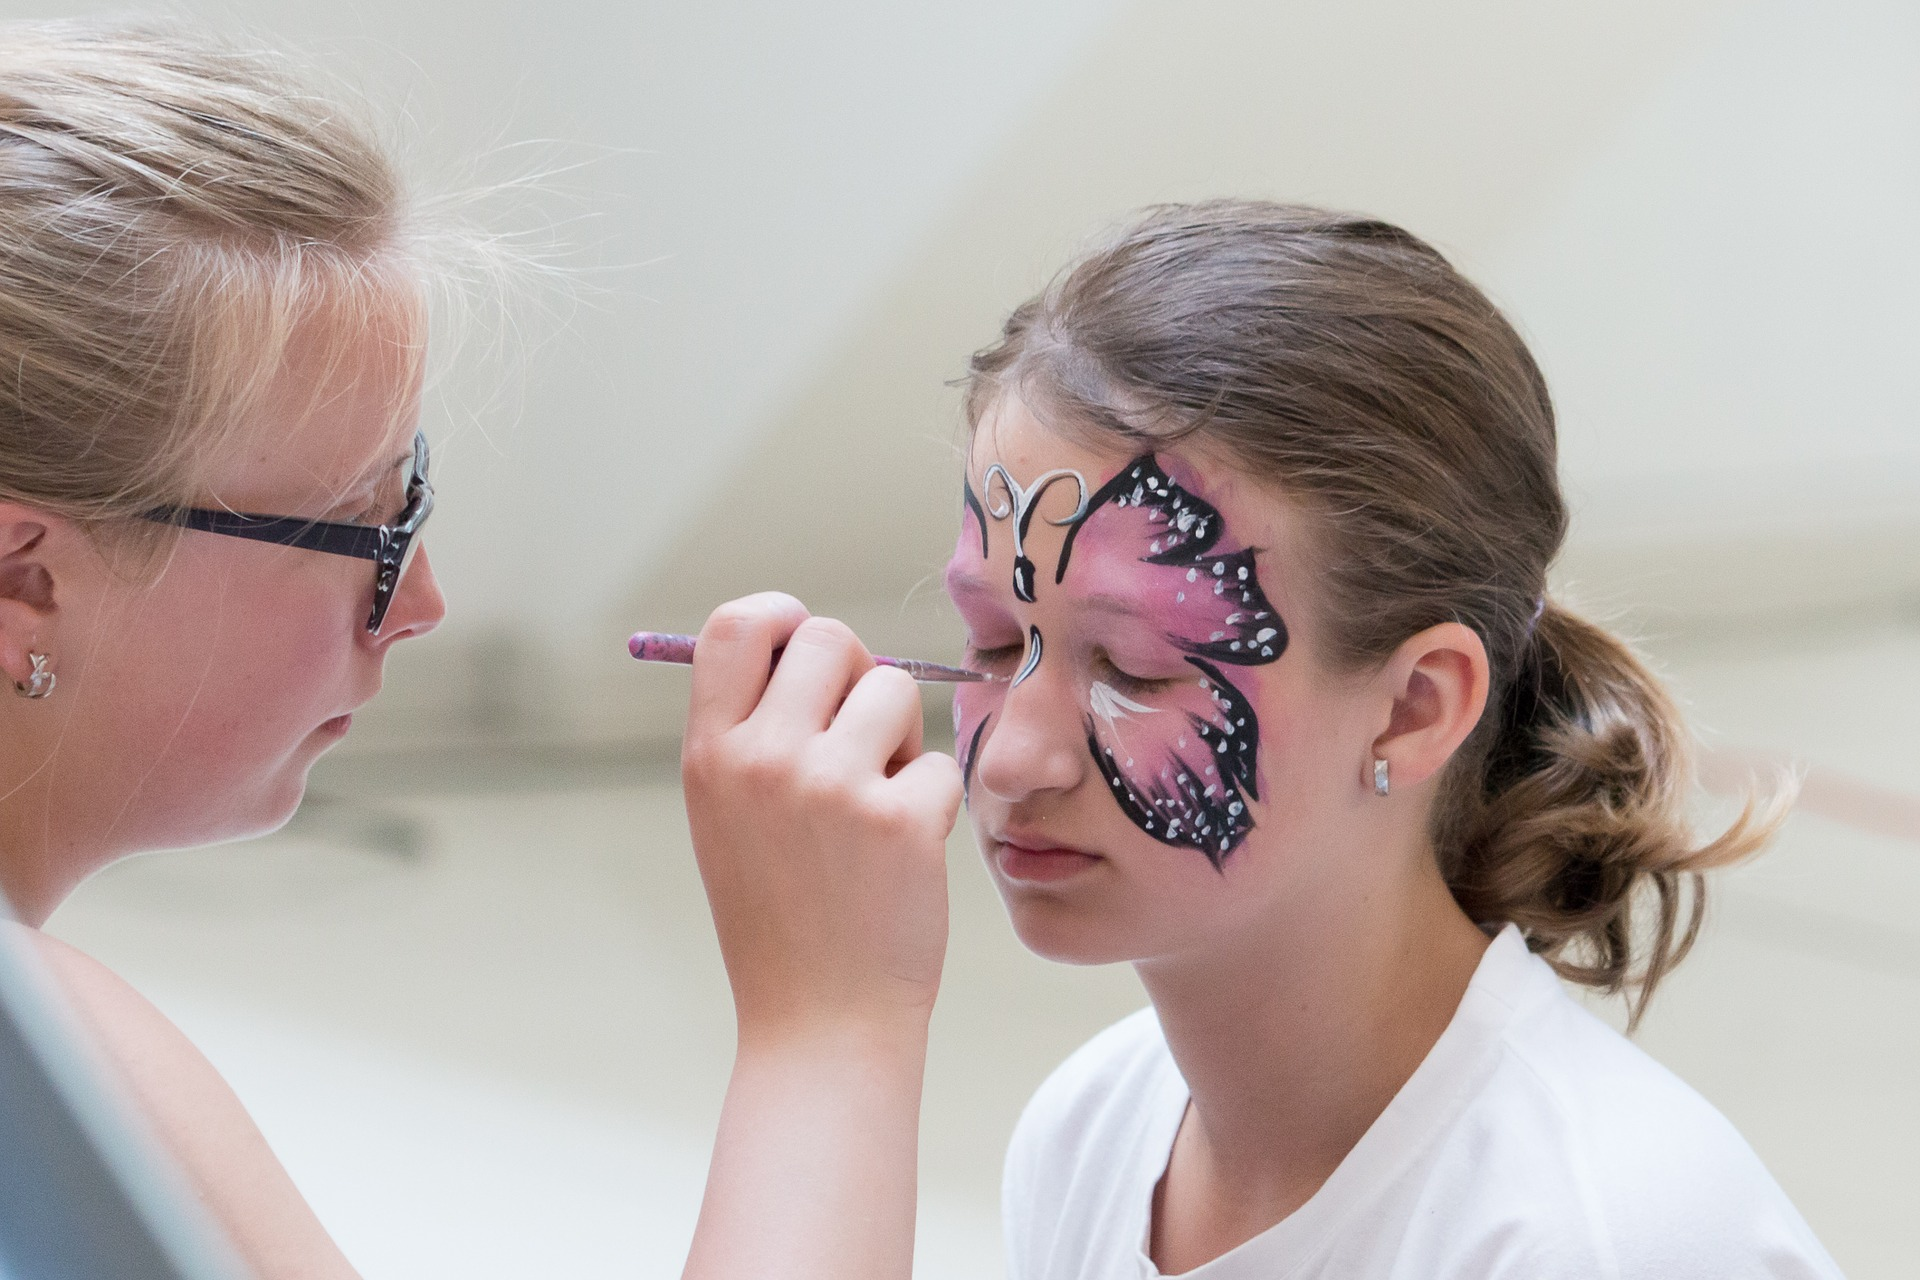 face-painting-2438355_1920